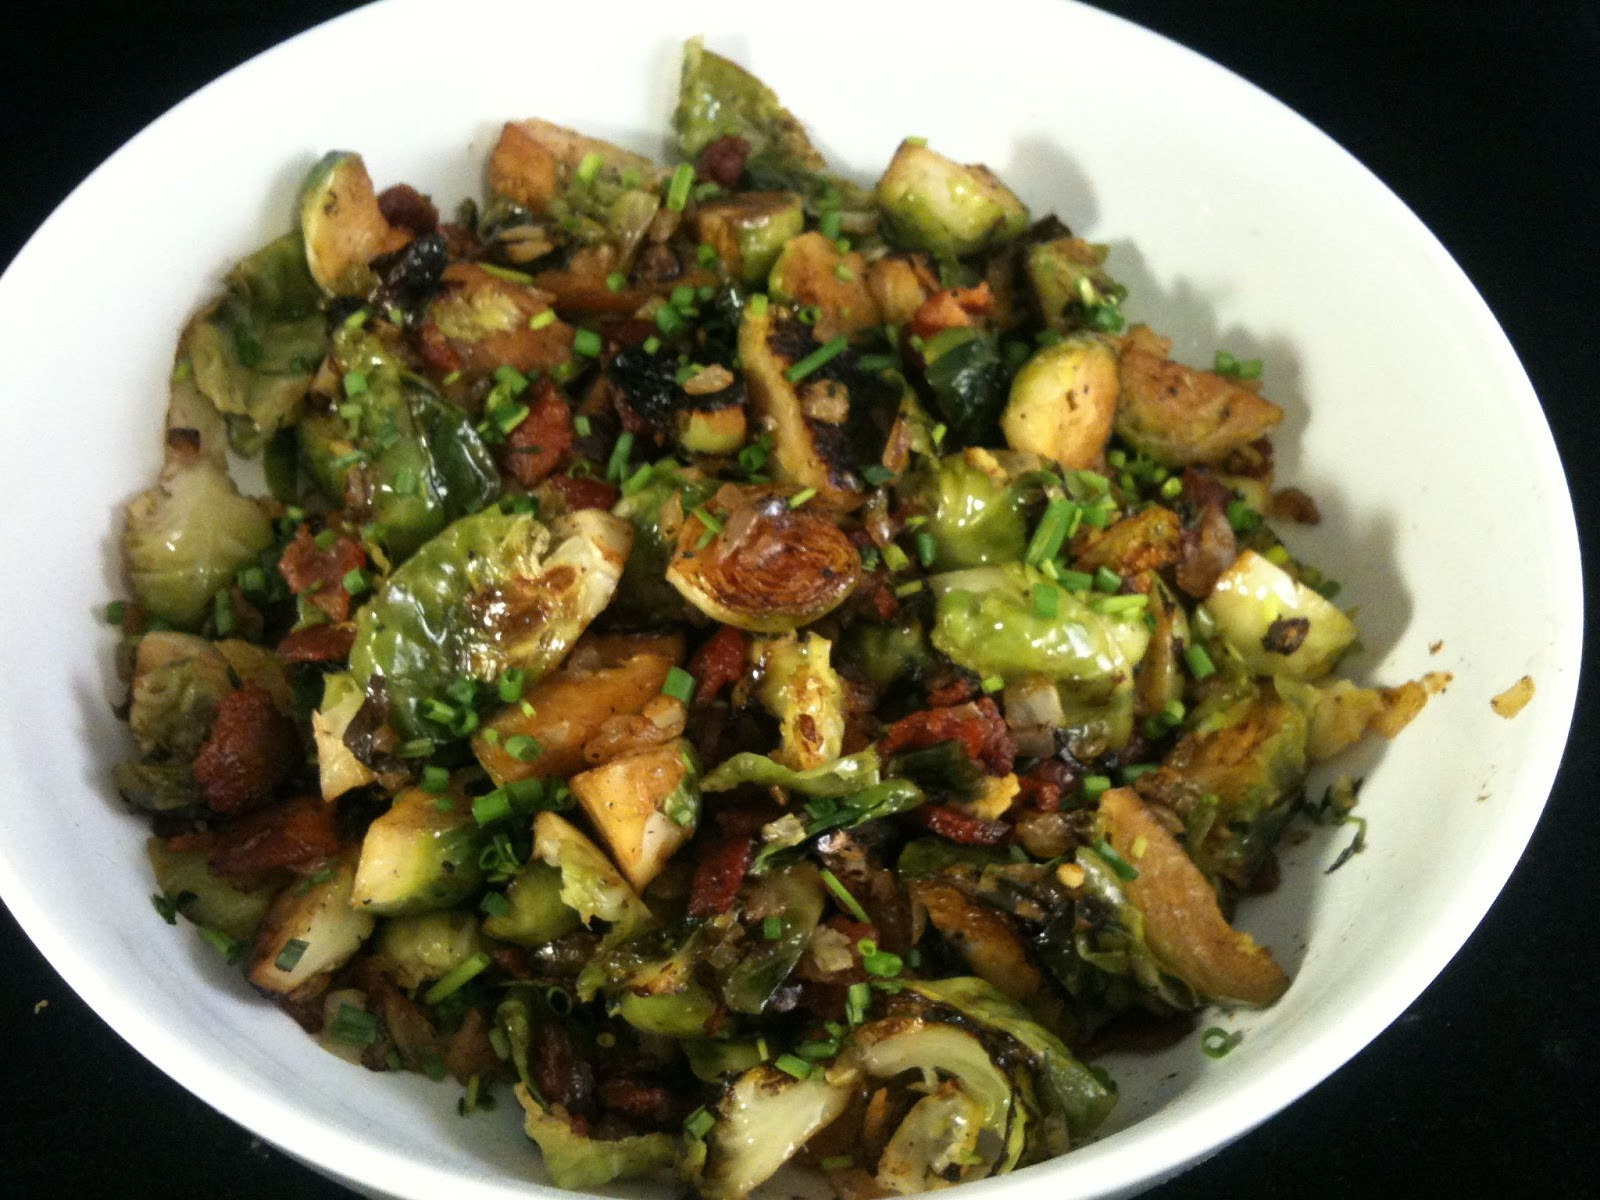 Chez Mona: Brussels Sprouts with Bacon and Herbs